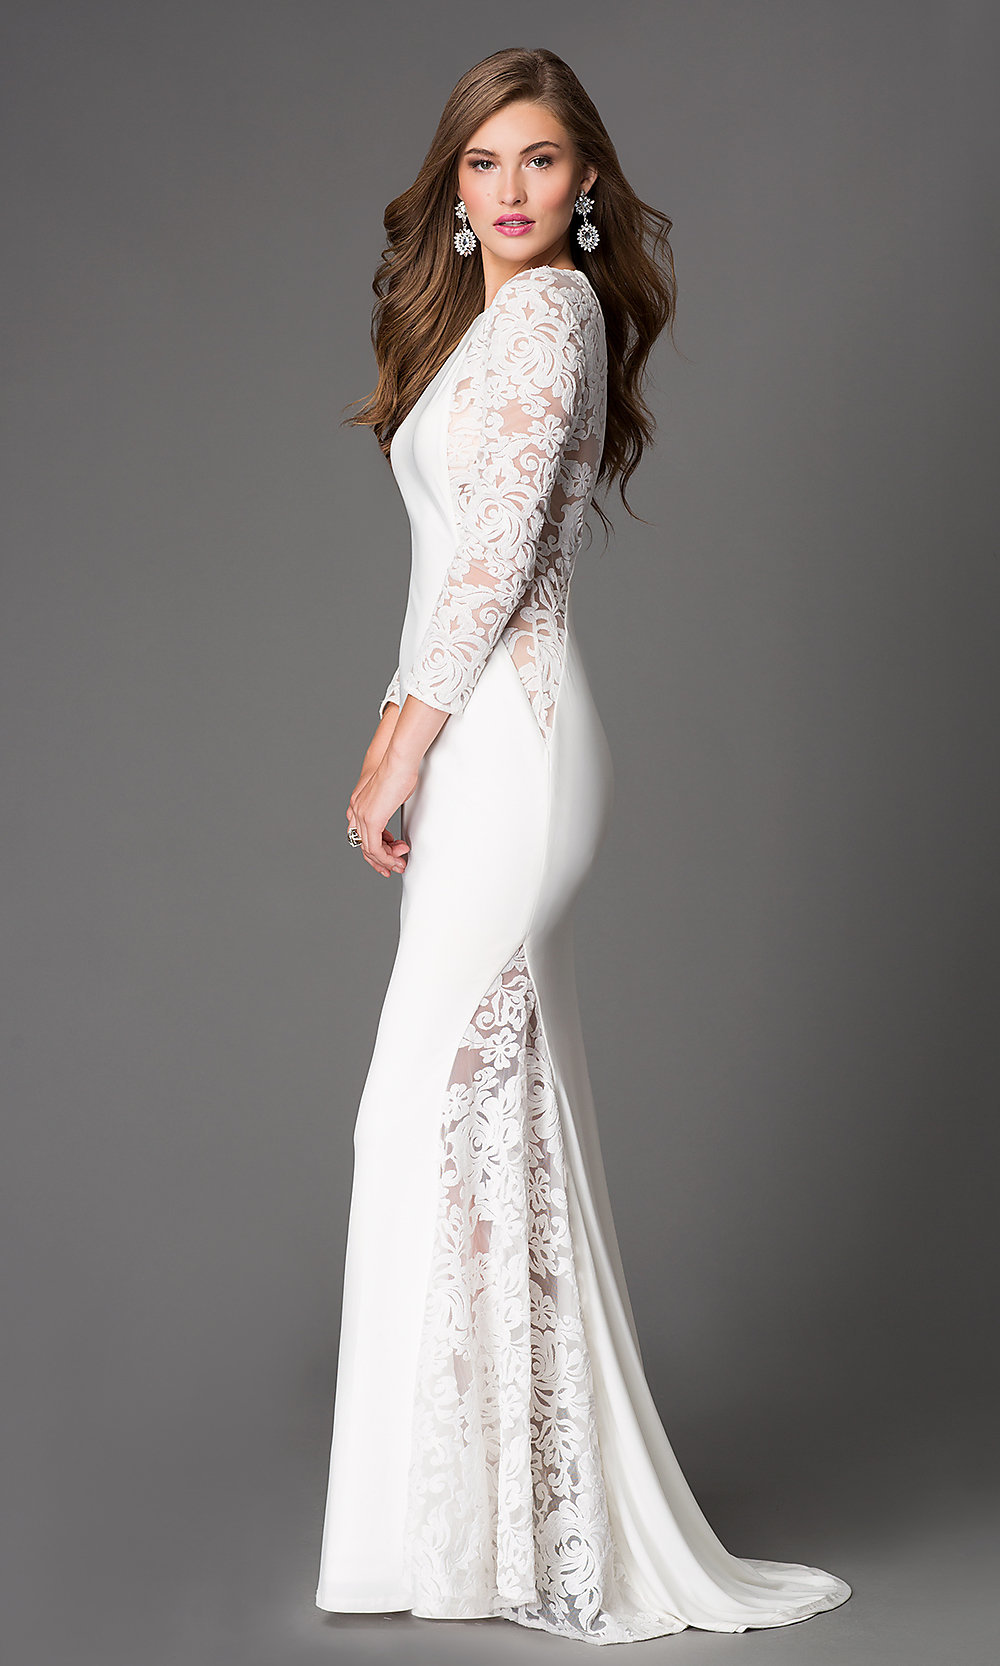 Xcite Long Sleeve Lace Illusion Dress-PromGirl